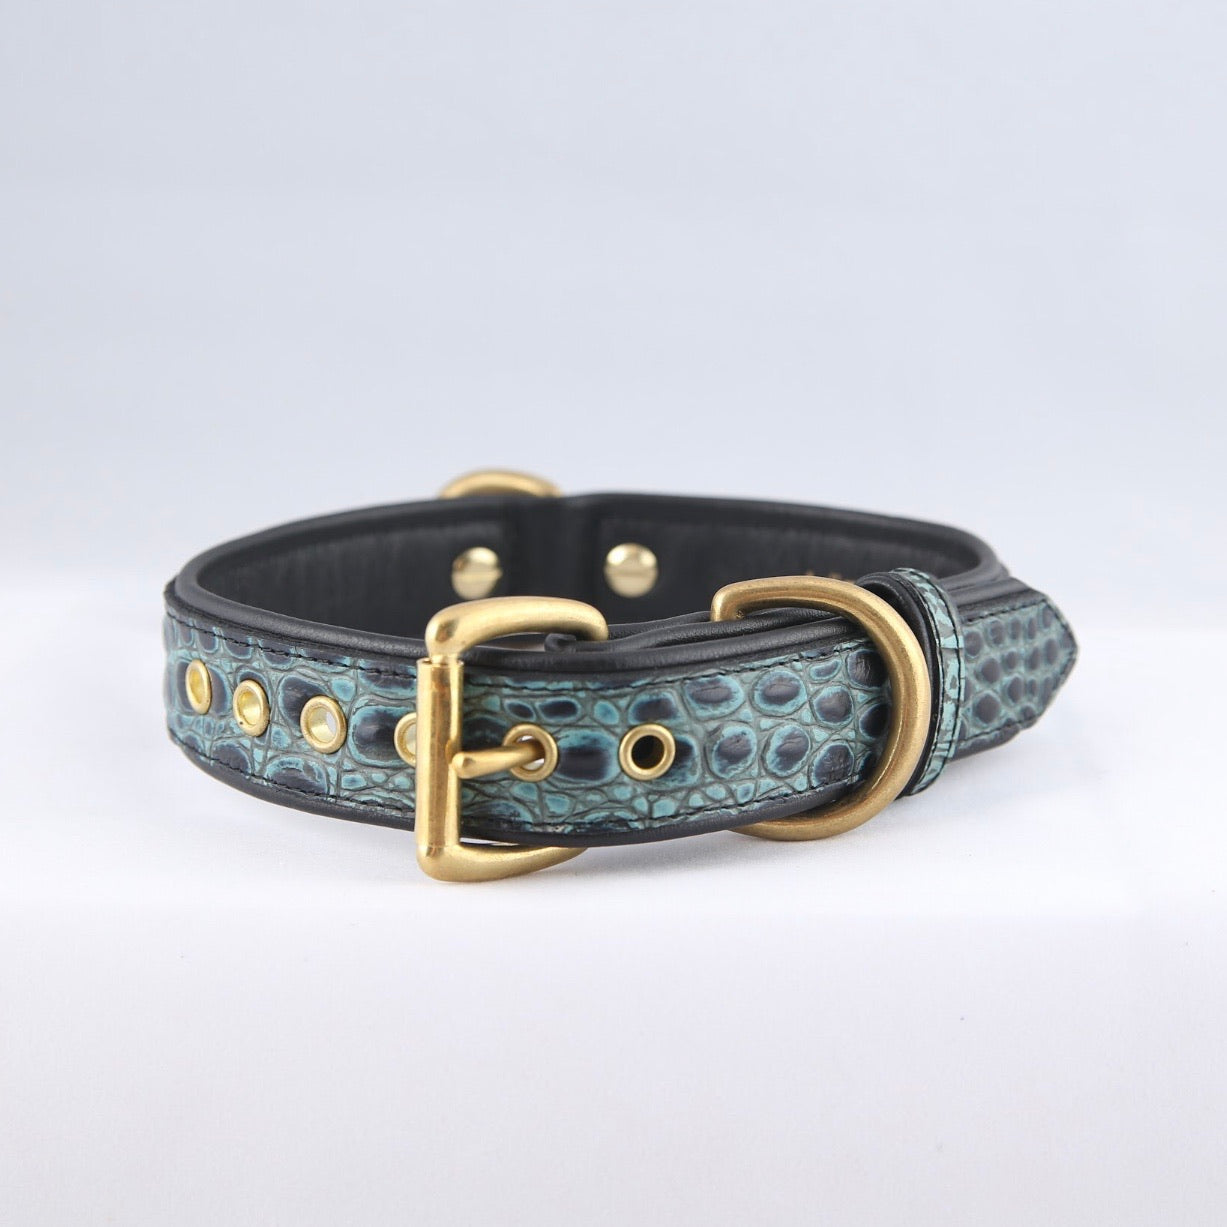 Genuine Leather Dog Collar: The Saint -Yves Collar